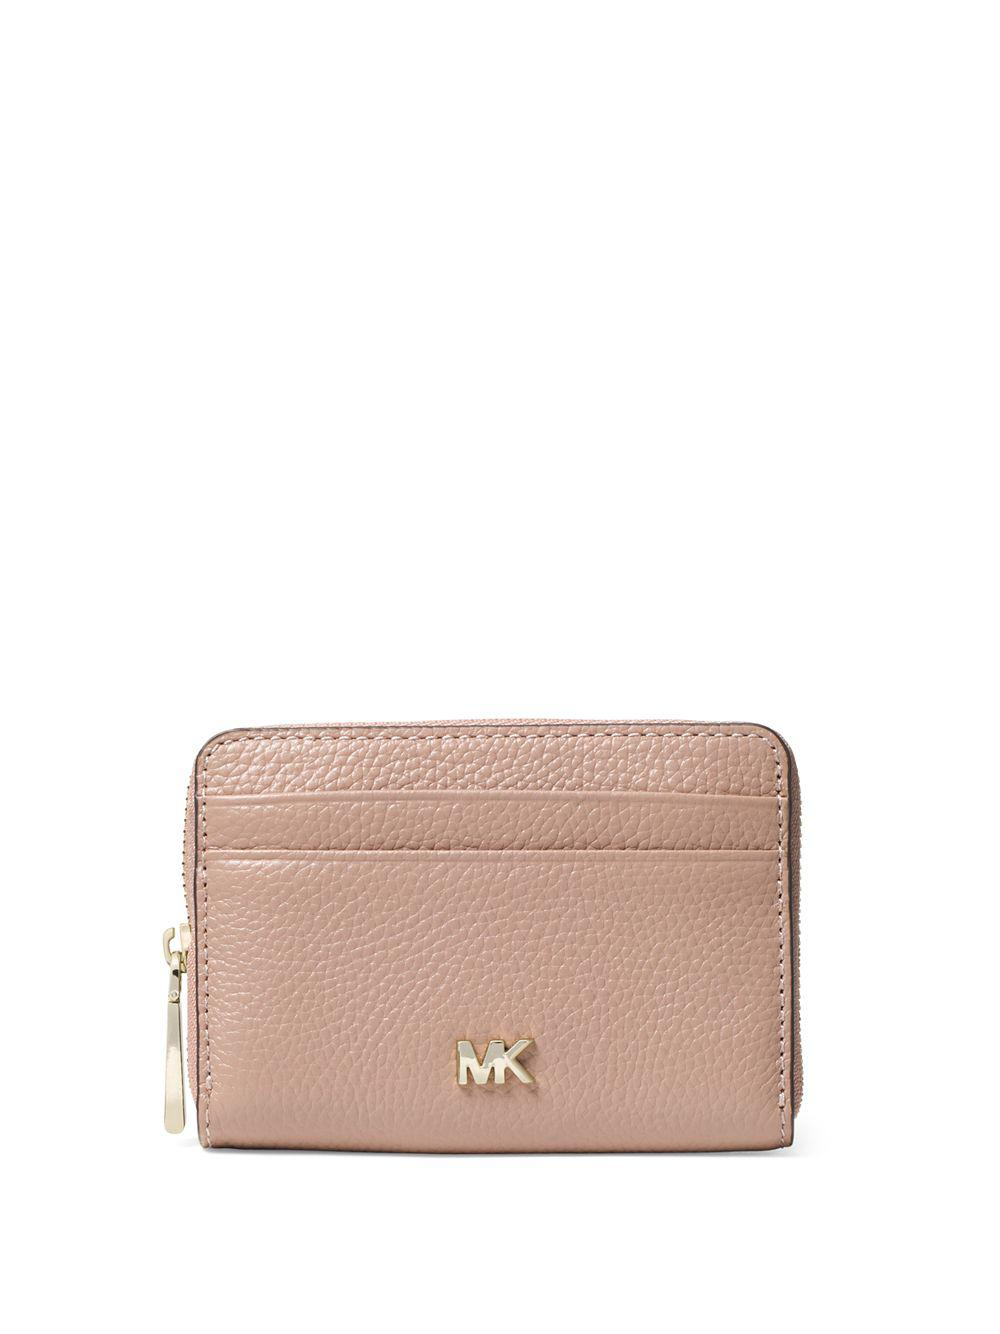 1f5dd416637ef Michael Michael Kors Money Pieces Textured Leather Coin Purse in ...